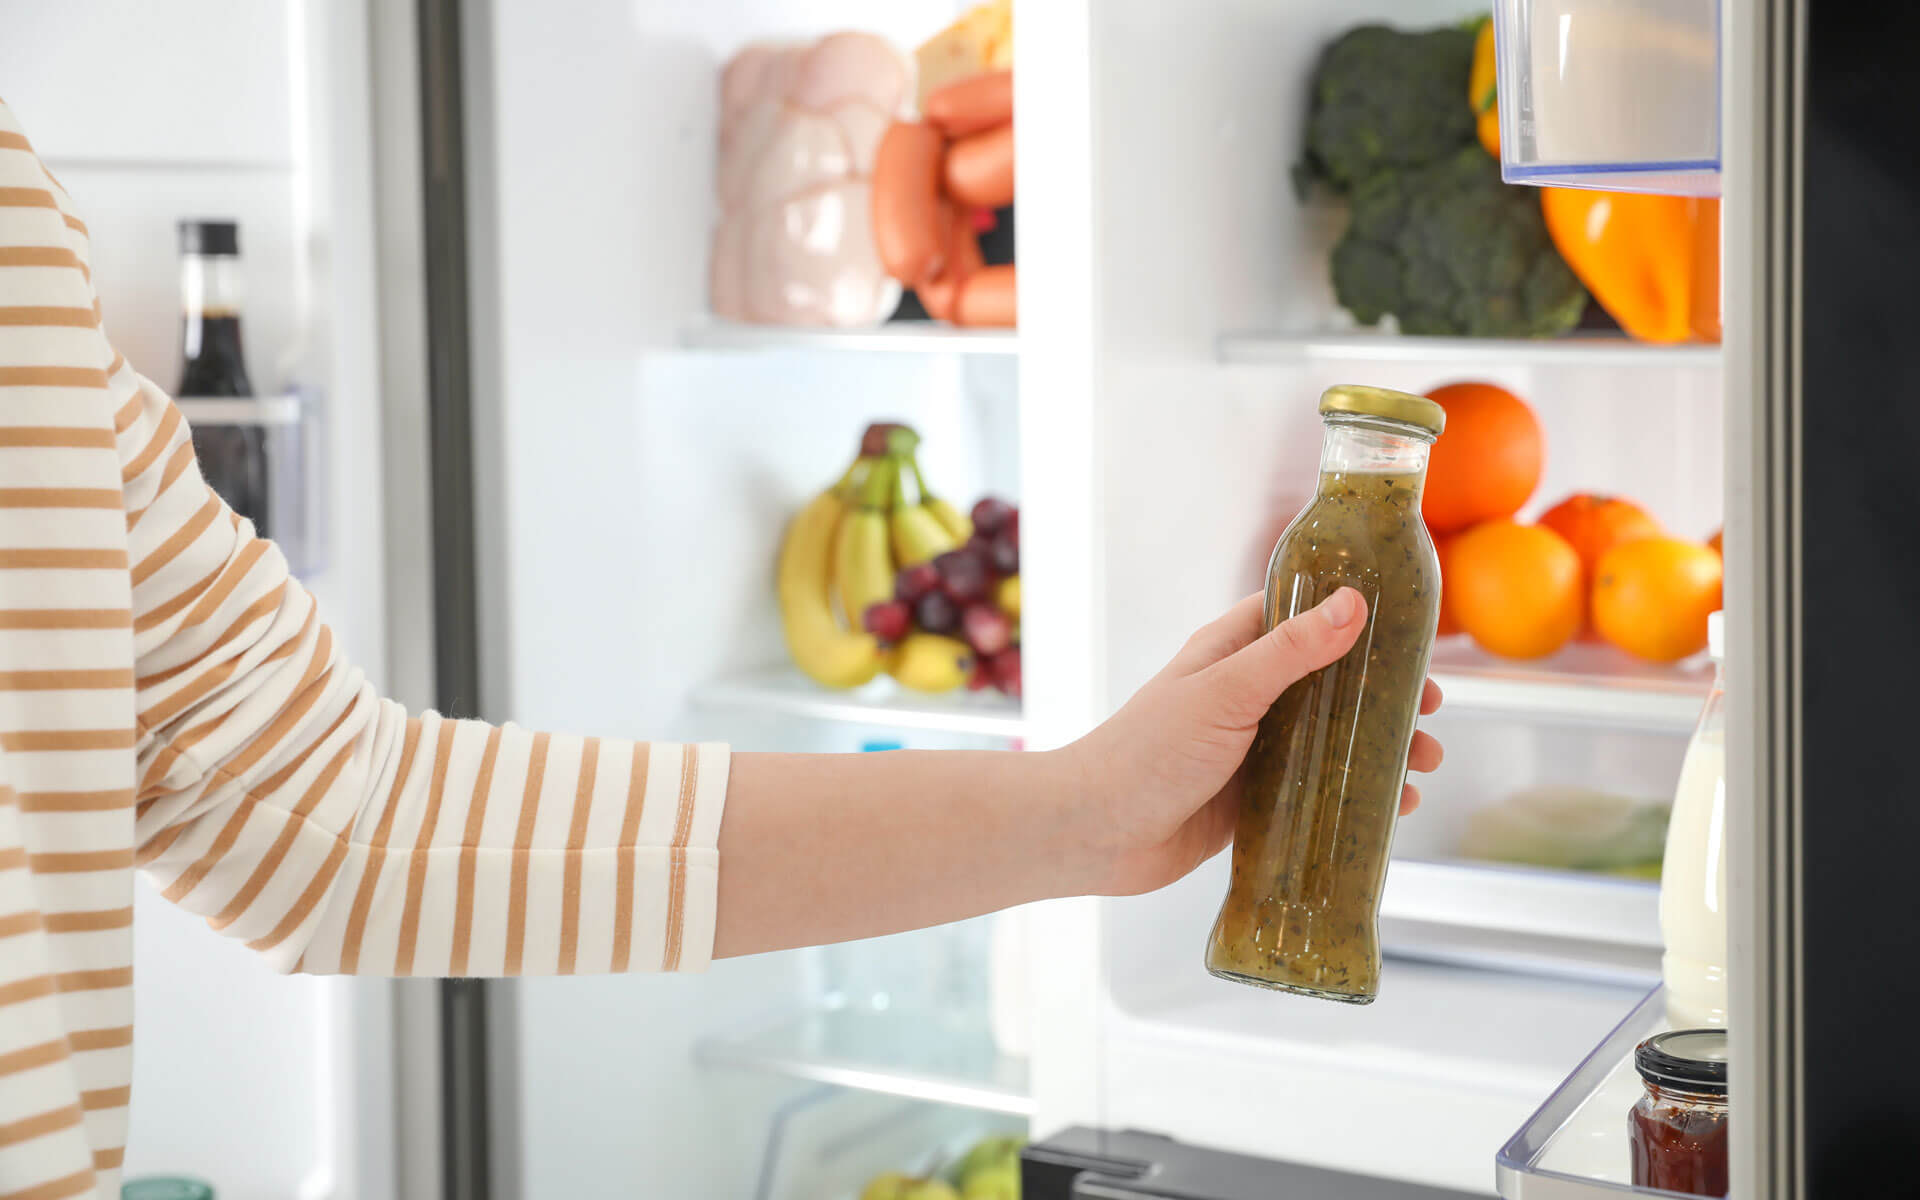 A person grabbing a bottle of sauce from a fridge